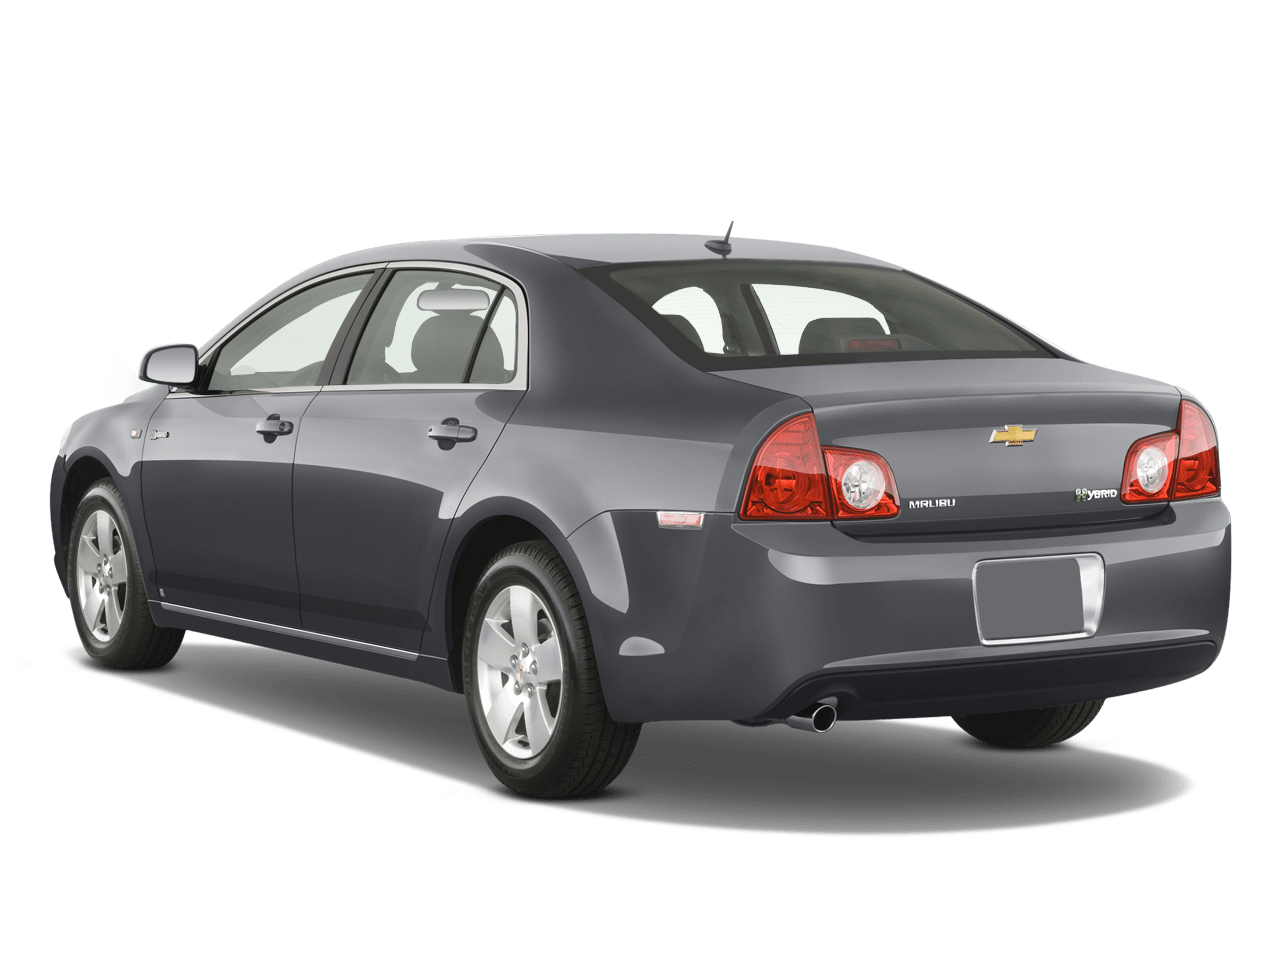 2008 chevy malibu front load washer parts diagram chevrolet reviews and rating motor trend